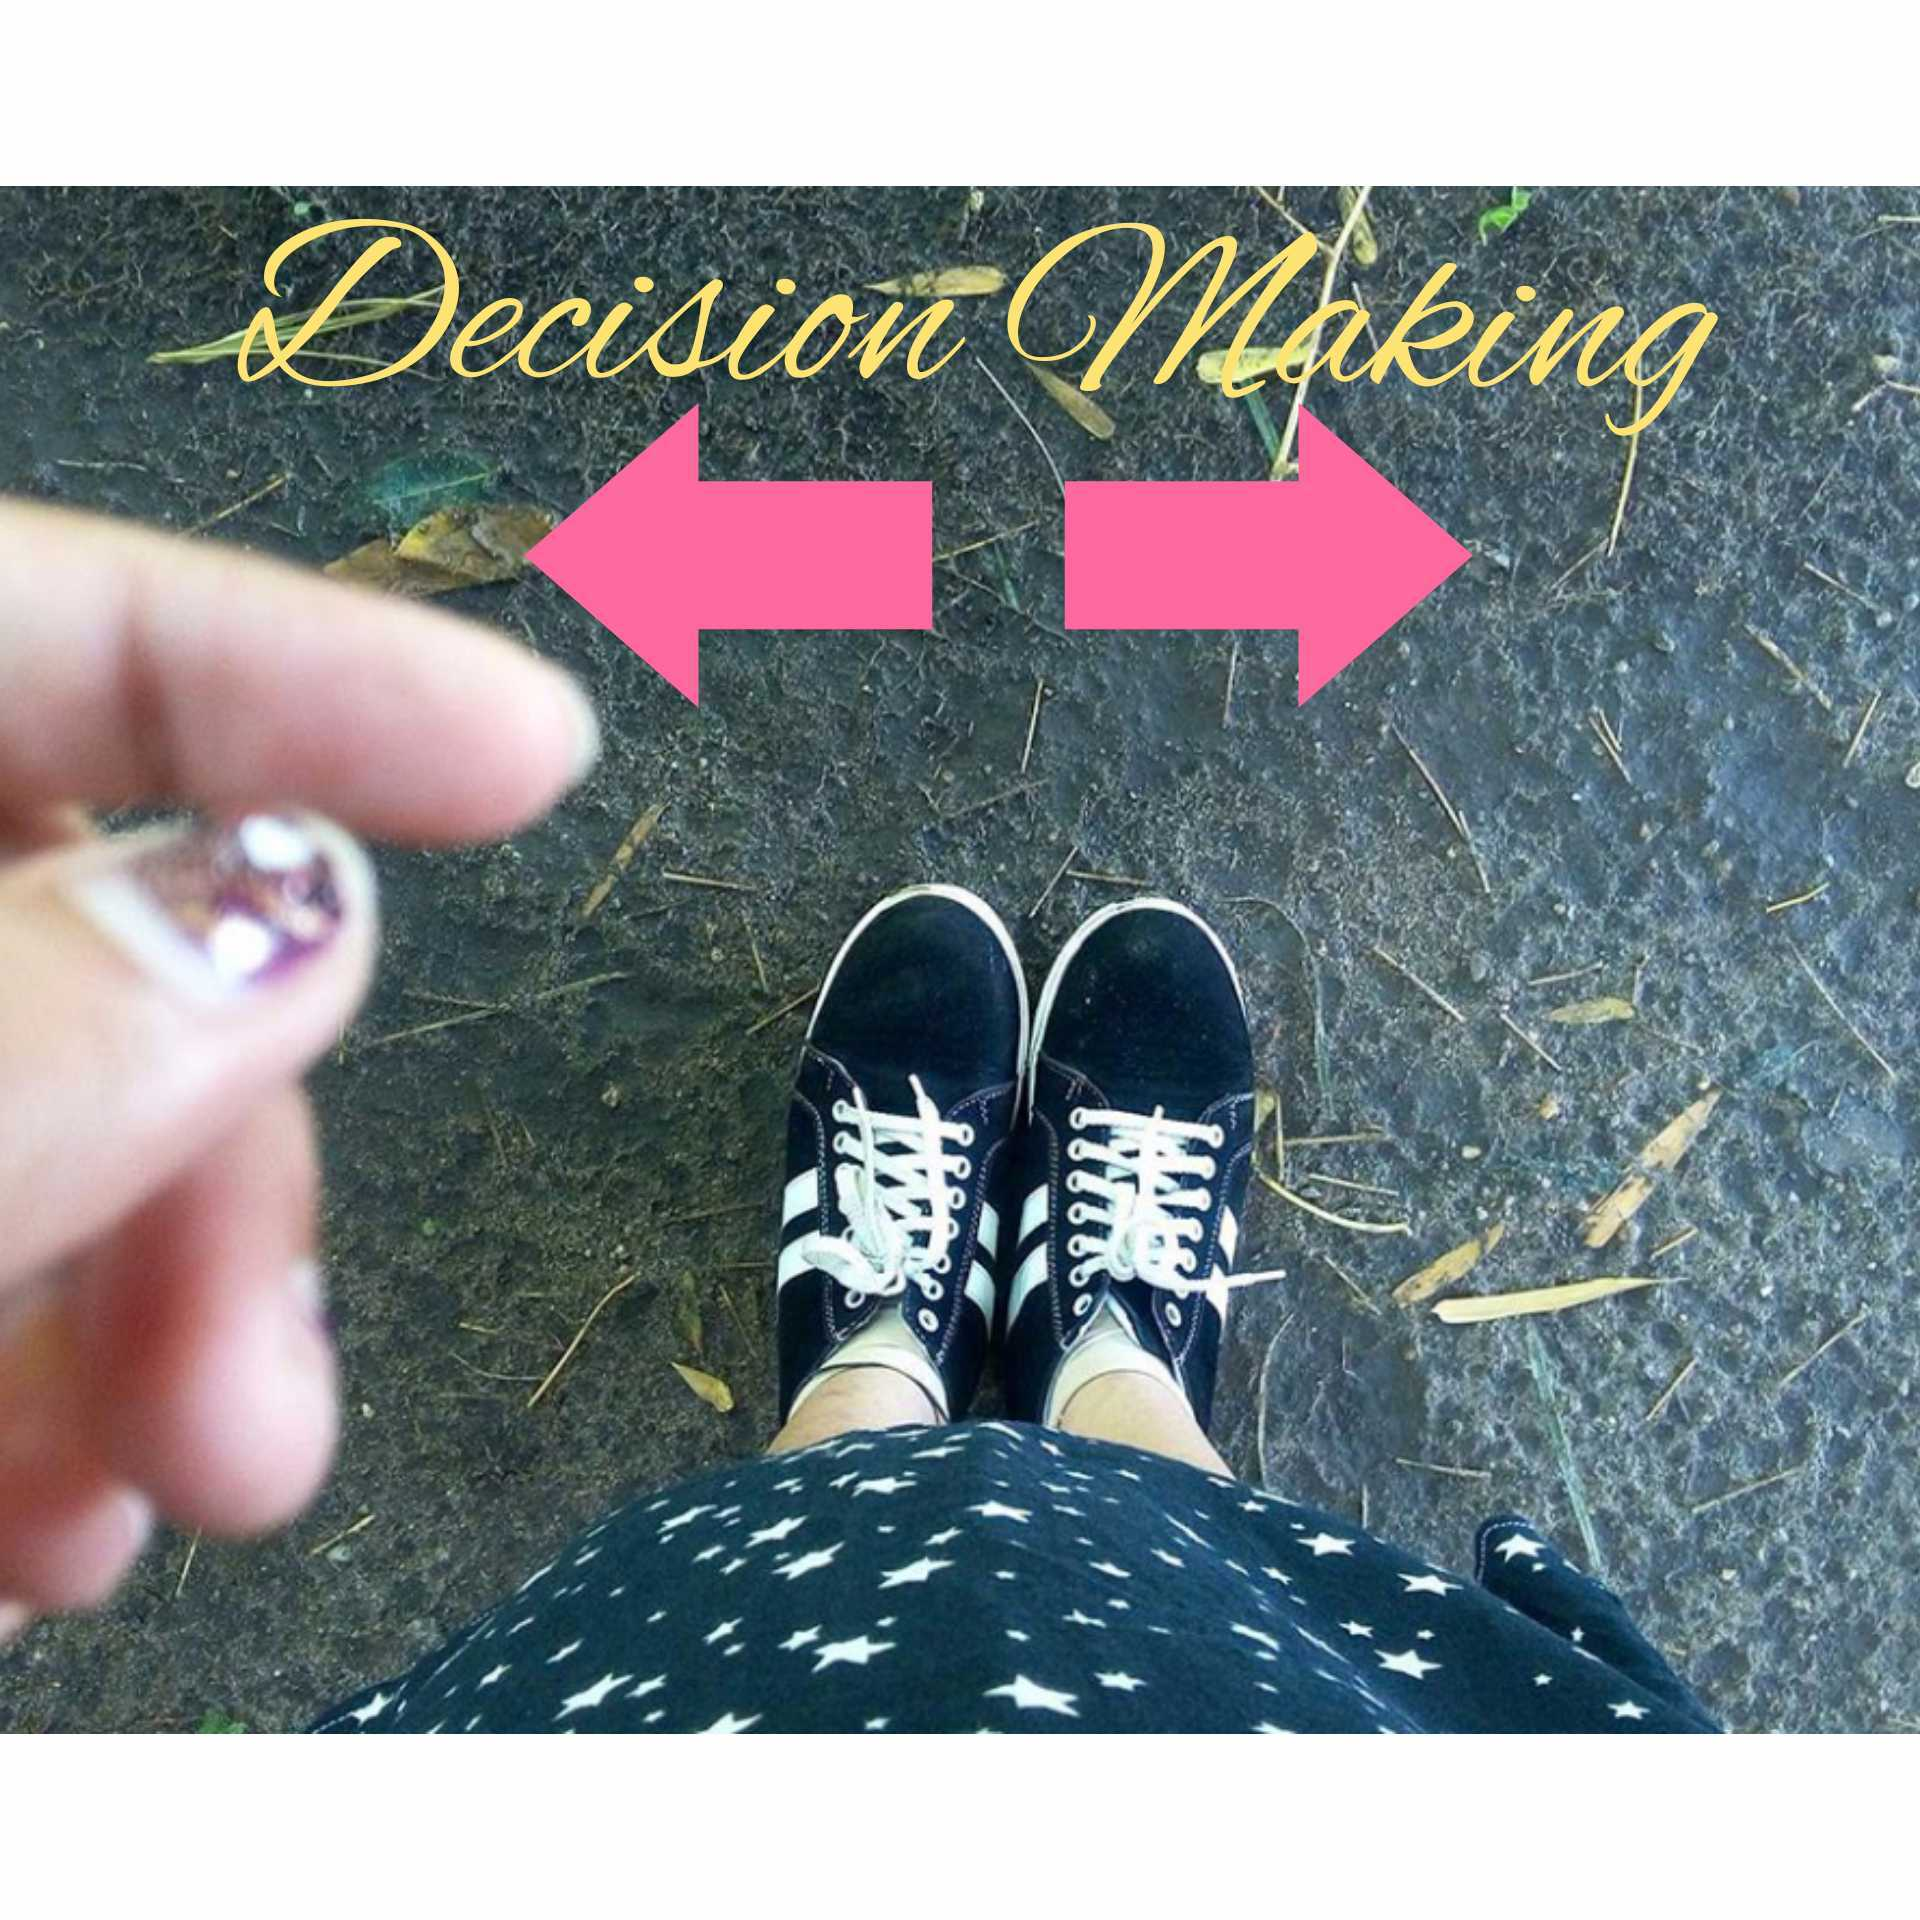 Decision Making  image